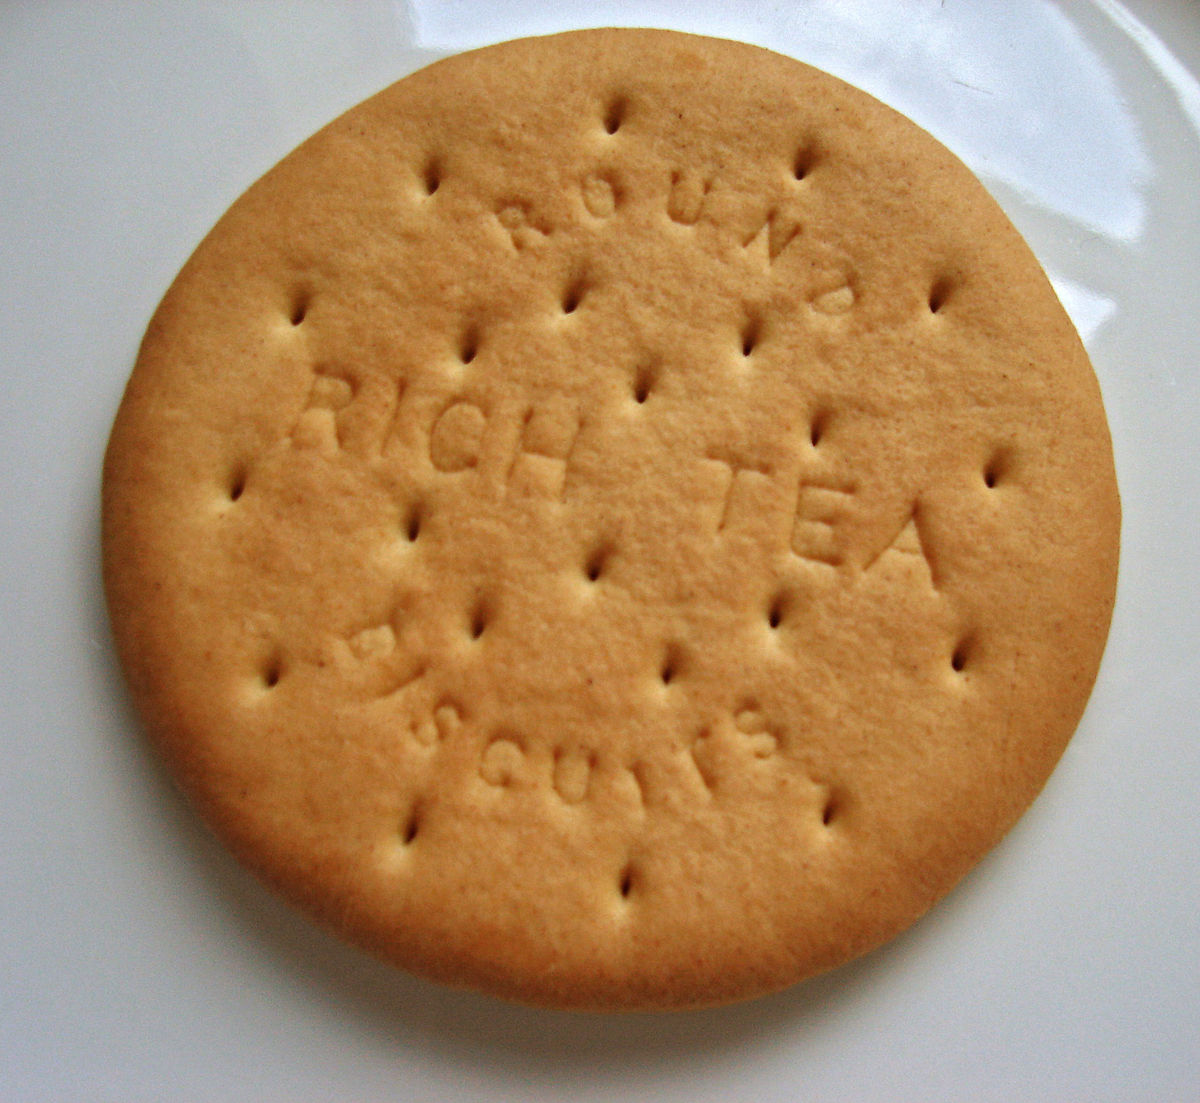 Biscuit Market to witness a pronounce growth during 2020-2026